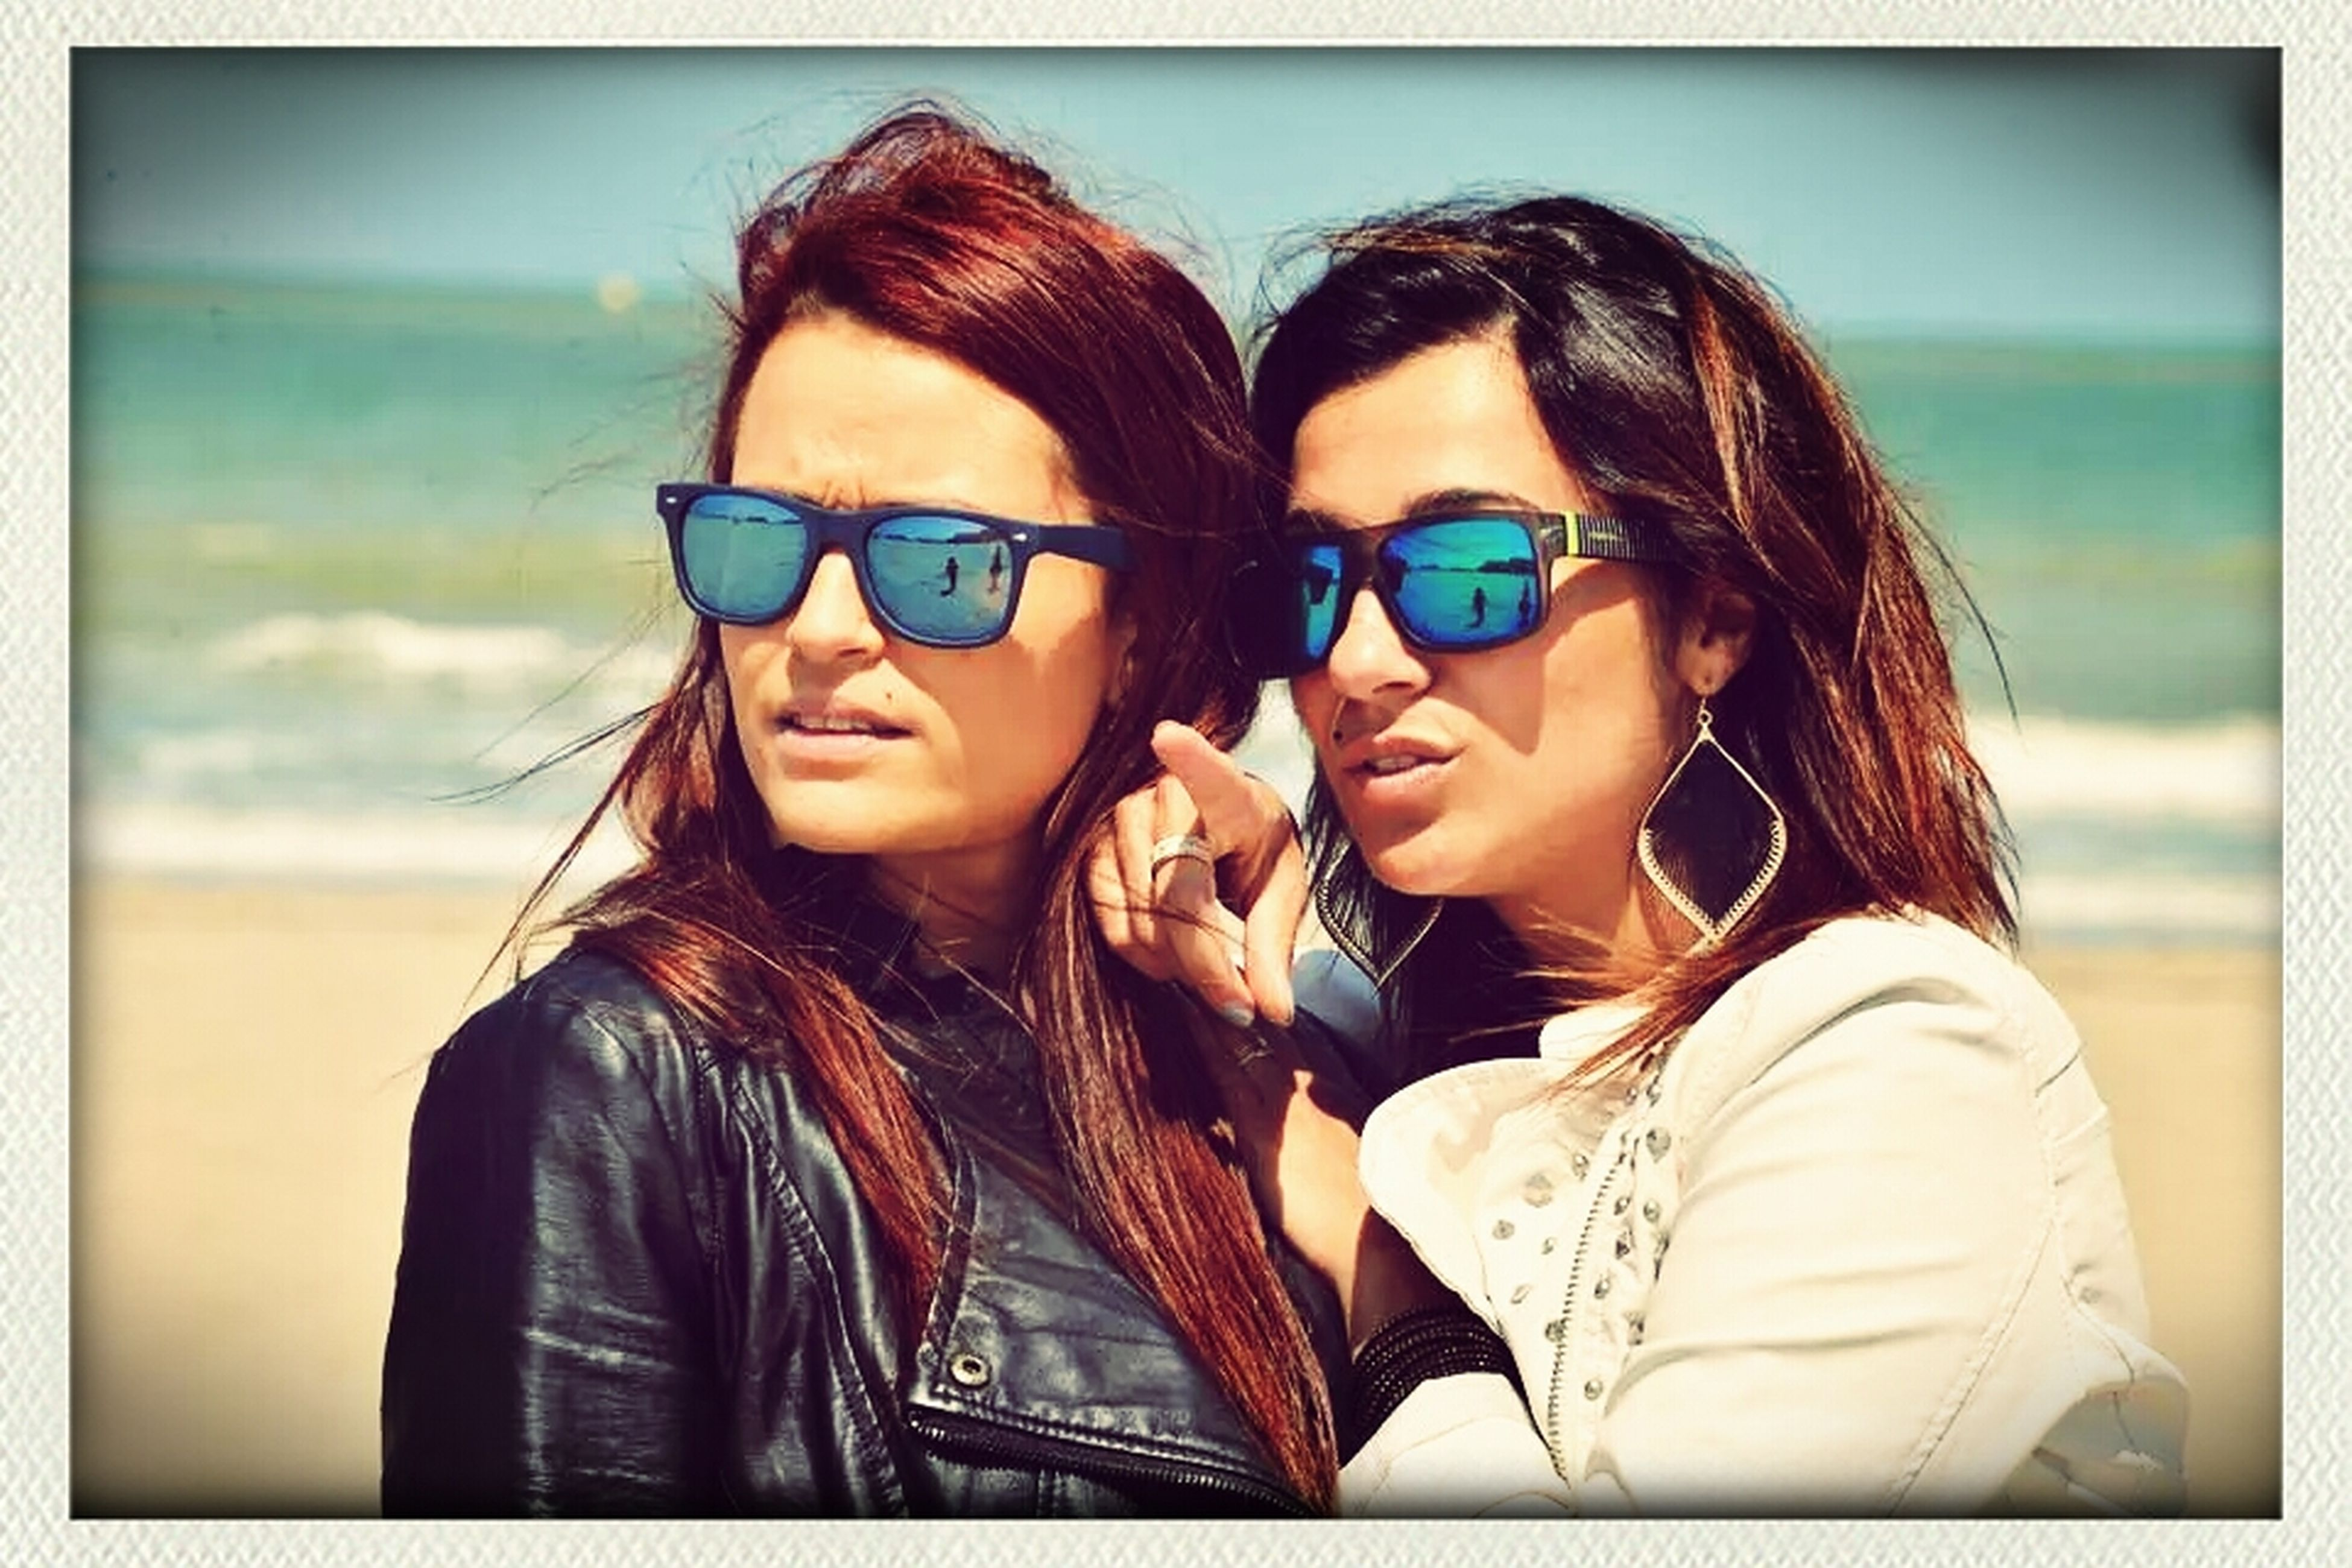 lifestyles, young adult, leisure activity, young women, person, looking at camera, portrait, togetherness, sunglasses, smiling, bonding, casual clothing, long hair, front view, happiness, headshot, focus on foreground